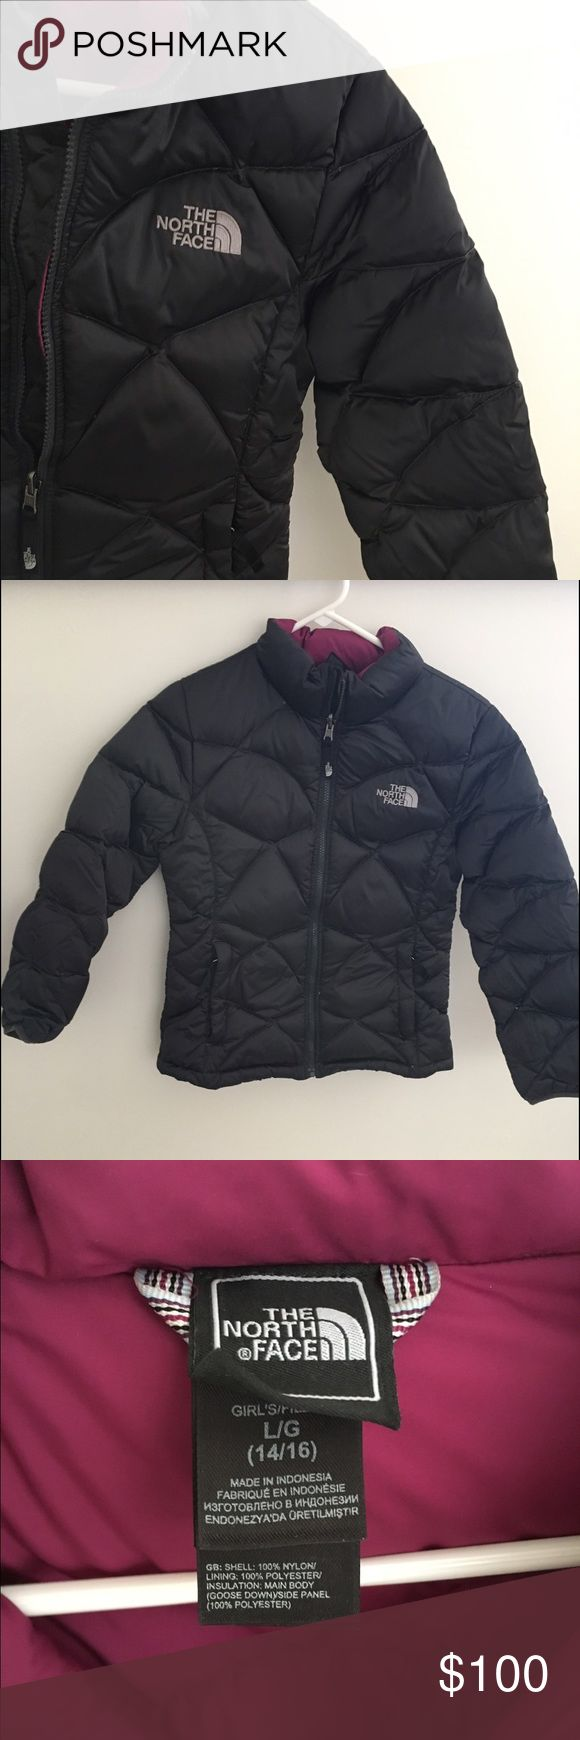 North face winter jacket size LG (14/16) Super warm and comfy jacket, great condition, only worn a couple times, price is negotiable North Face Jackets & Coats